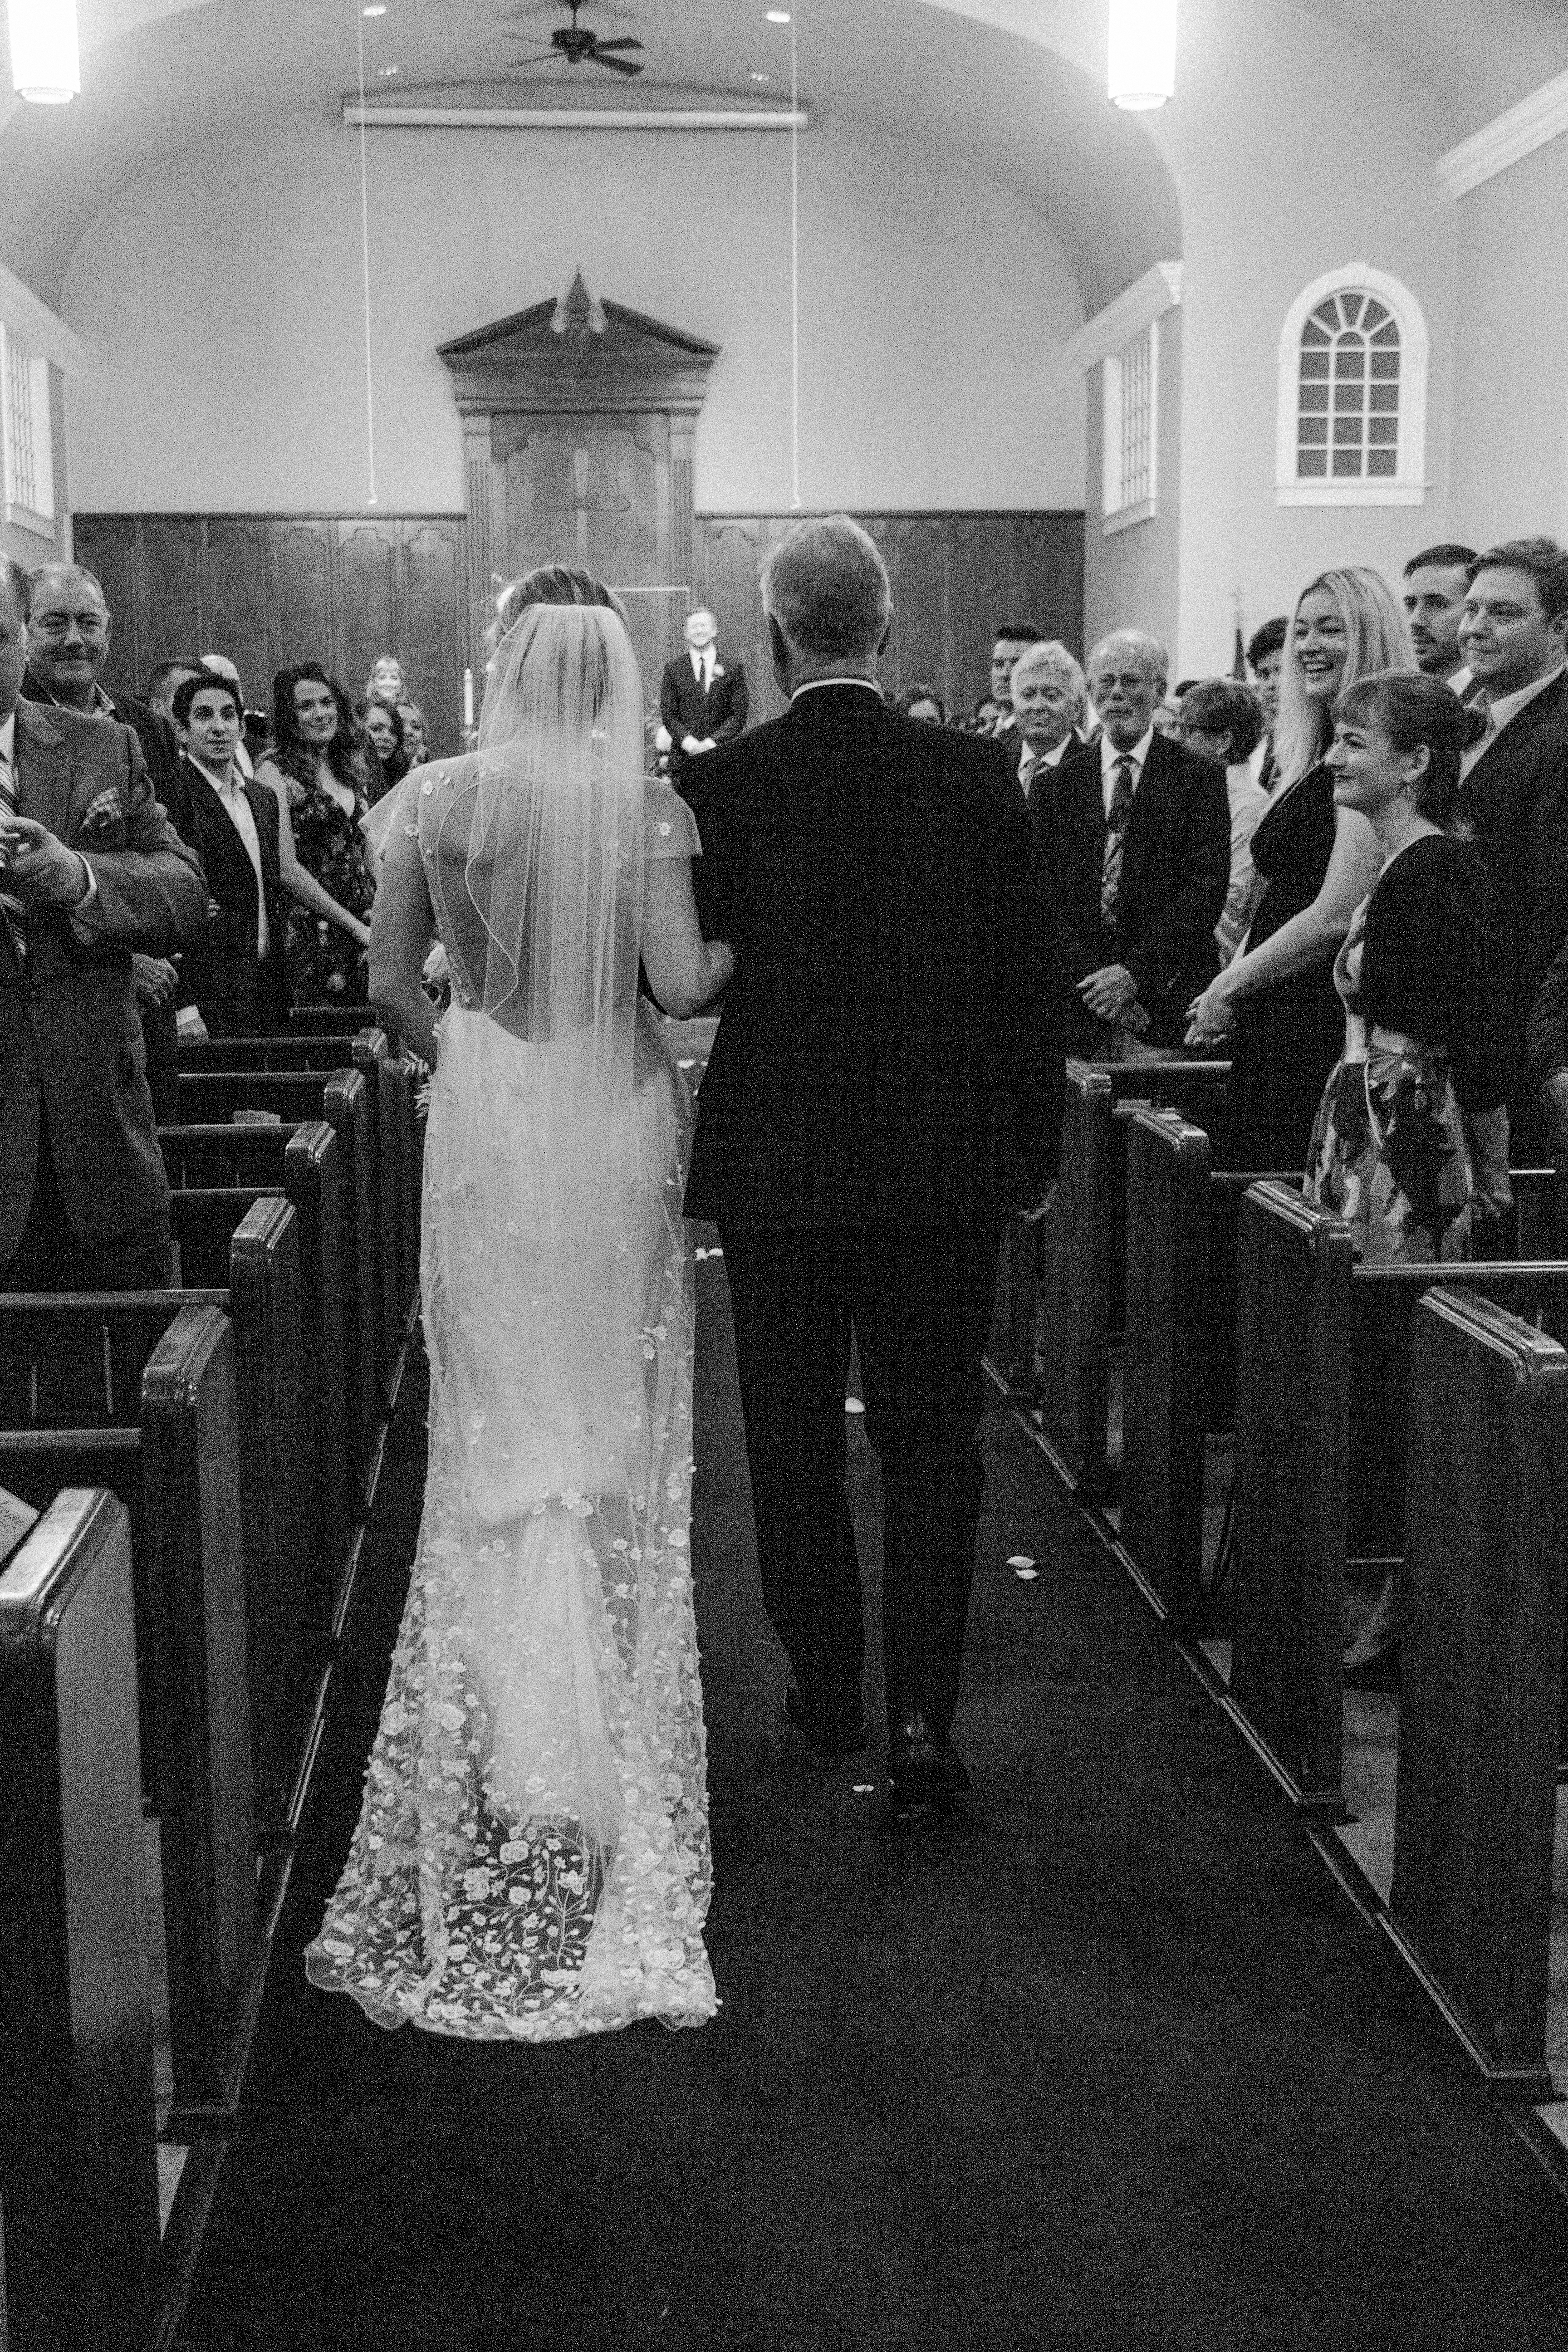 Bride and her father walk down the aisle at Bentonville First United Methodist Church wedding